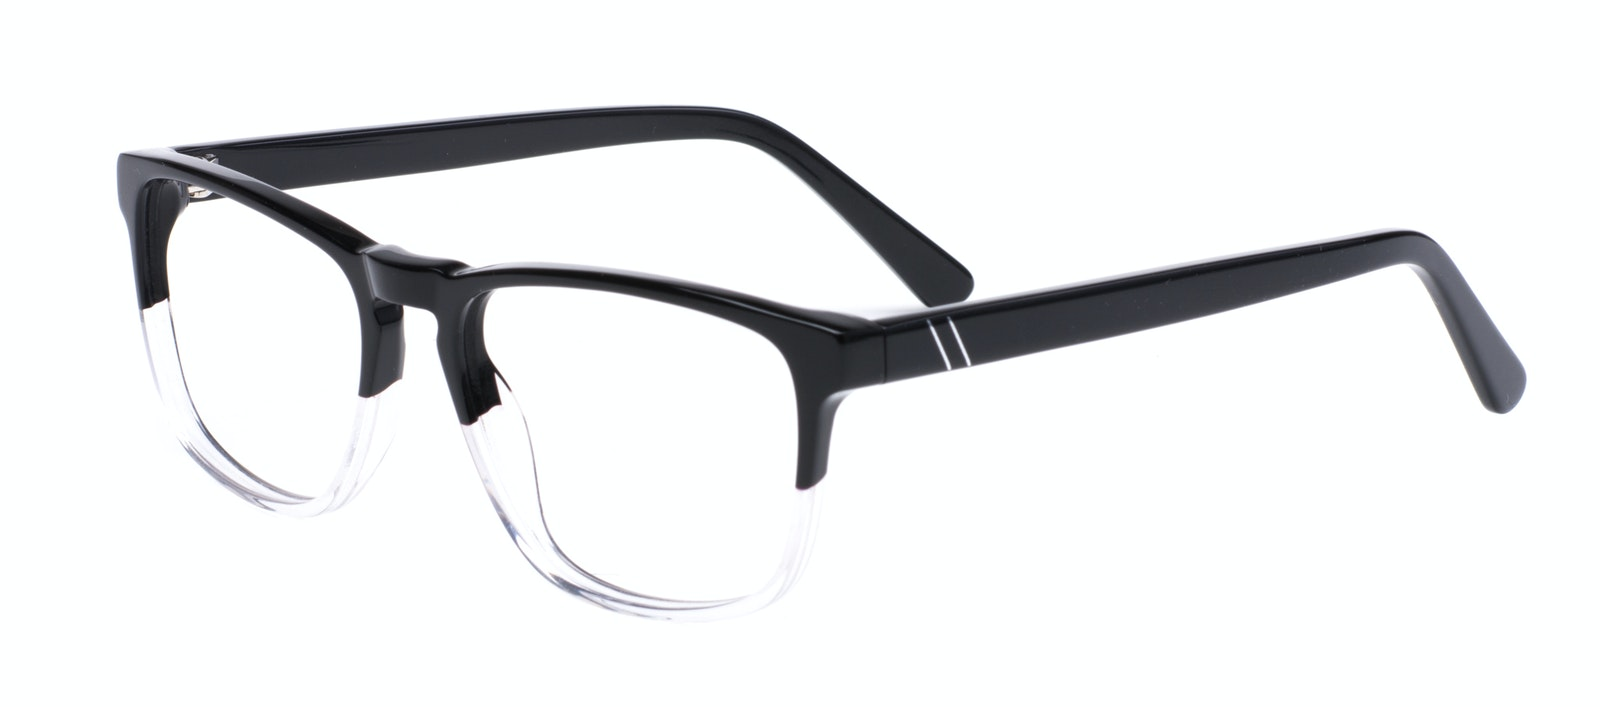 Affordable Fashion Glasses Rectangle Eyeglasses Men Loft Black Diamond Tilt